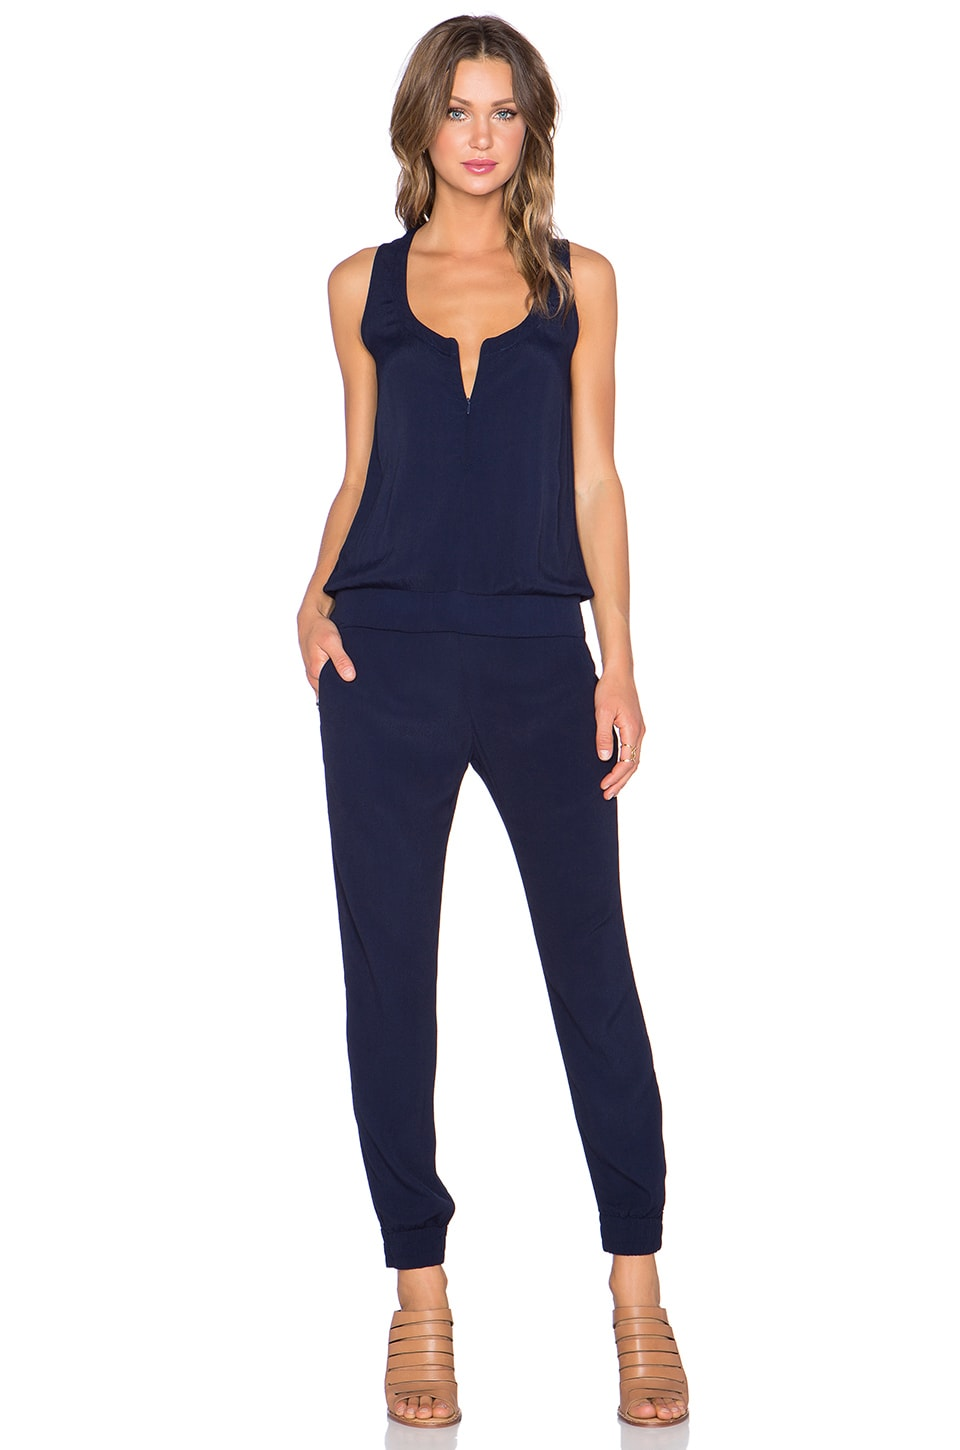 MONROW Jumpsuit in Navy/Revolveclothing.com/ $158.00